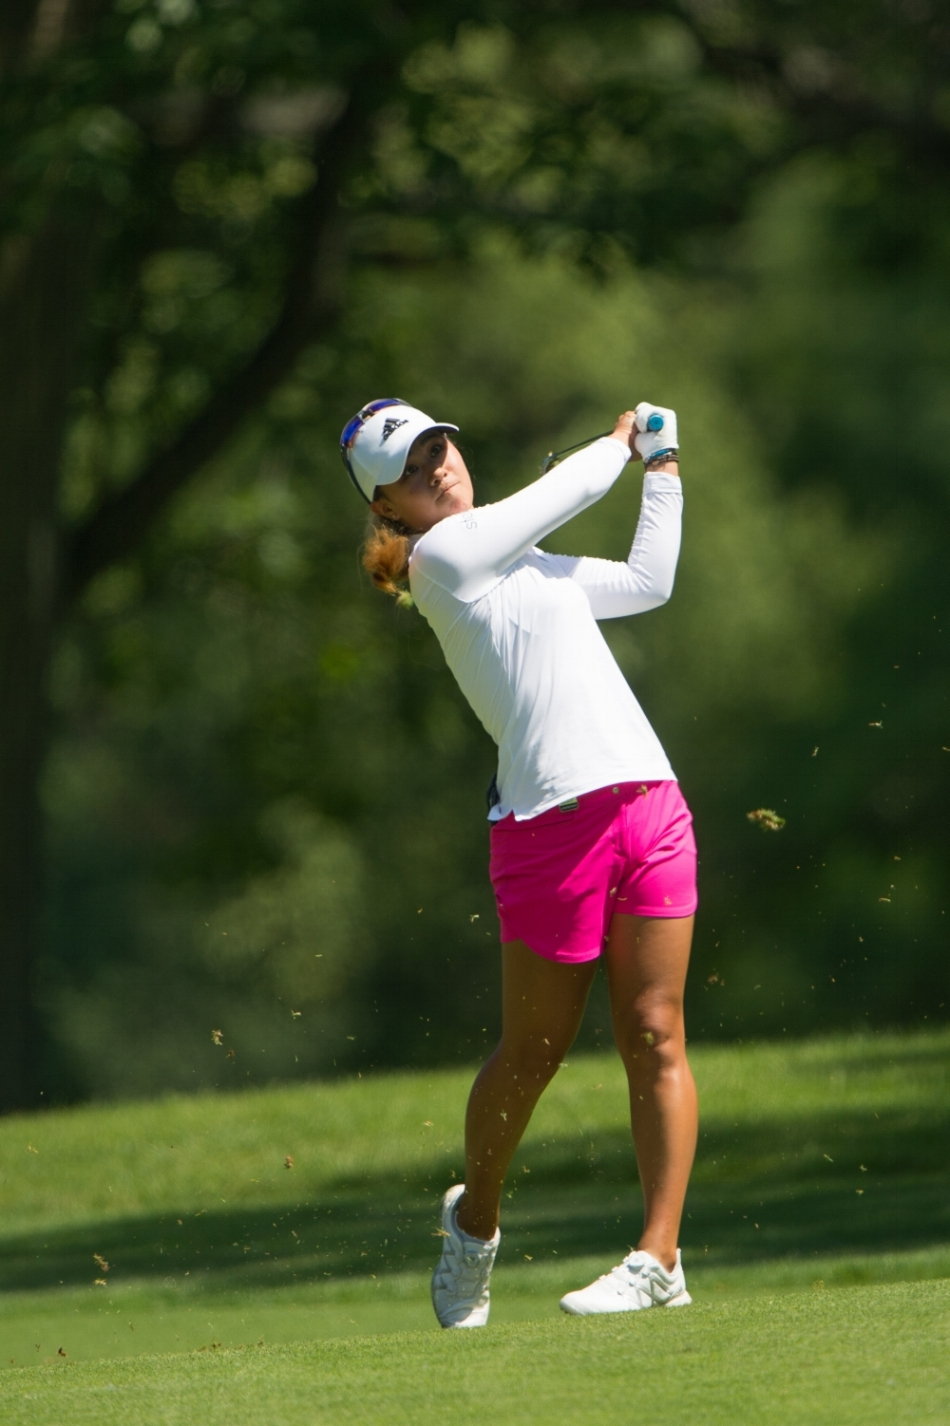 Kildeer, IL - June 28: Danielle Kang of the U.S. hits her second shot on the 12th hole during the first round of the 2018 KPMG Women's PGA Championship at Kemper Lakes Golf Club on June 28, 2018 in Kildeer, Illinois. (Photo by Montana Pritchard/Courtesy of The PGA of America).